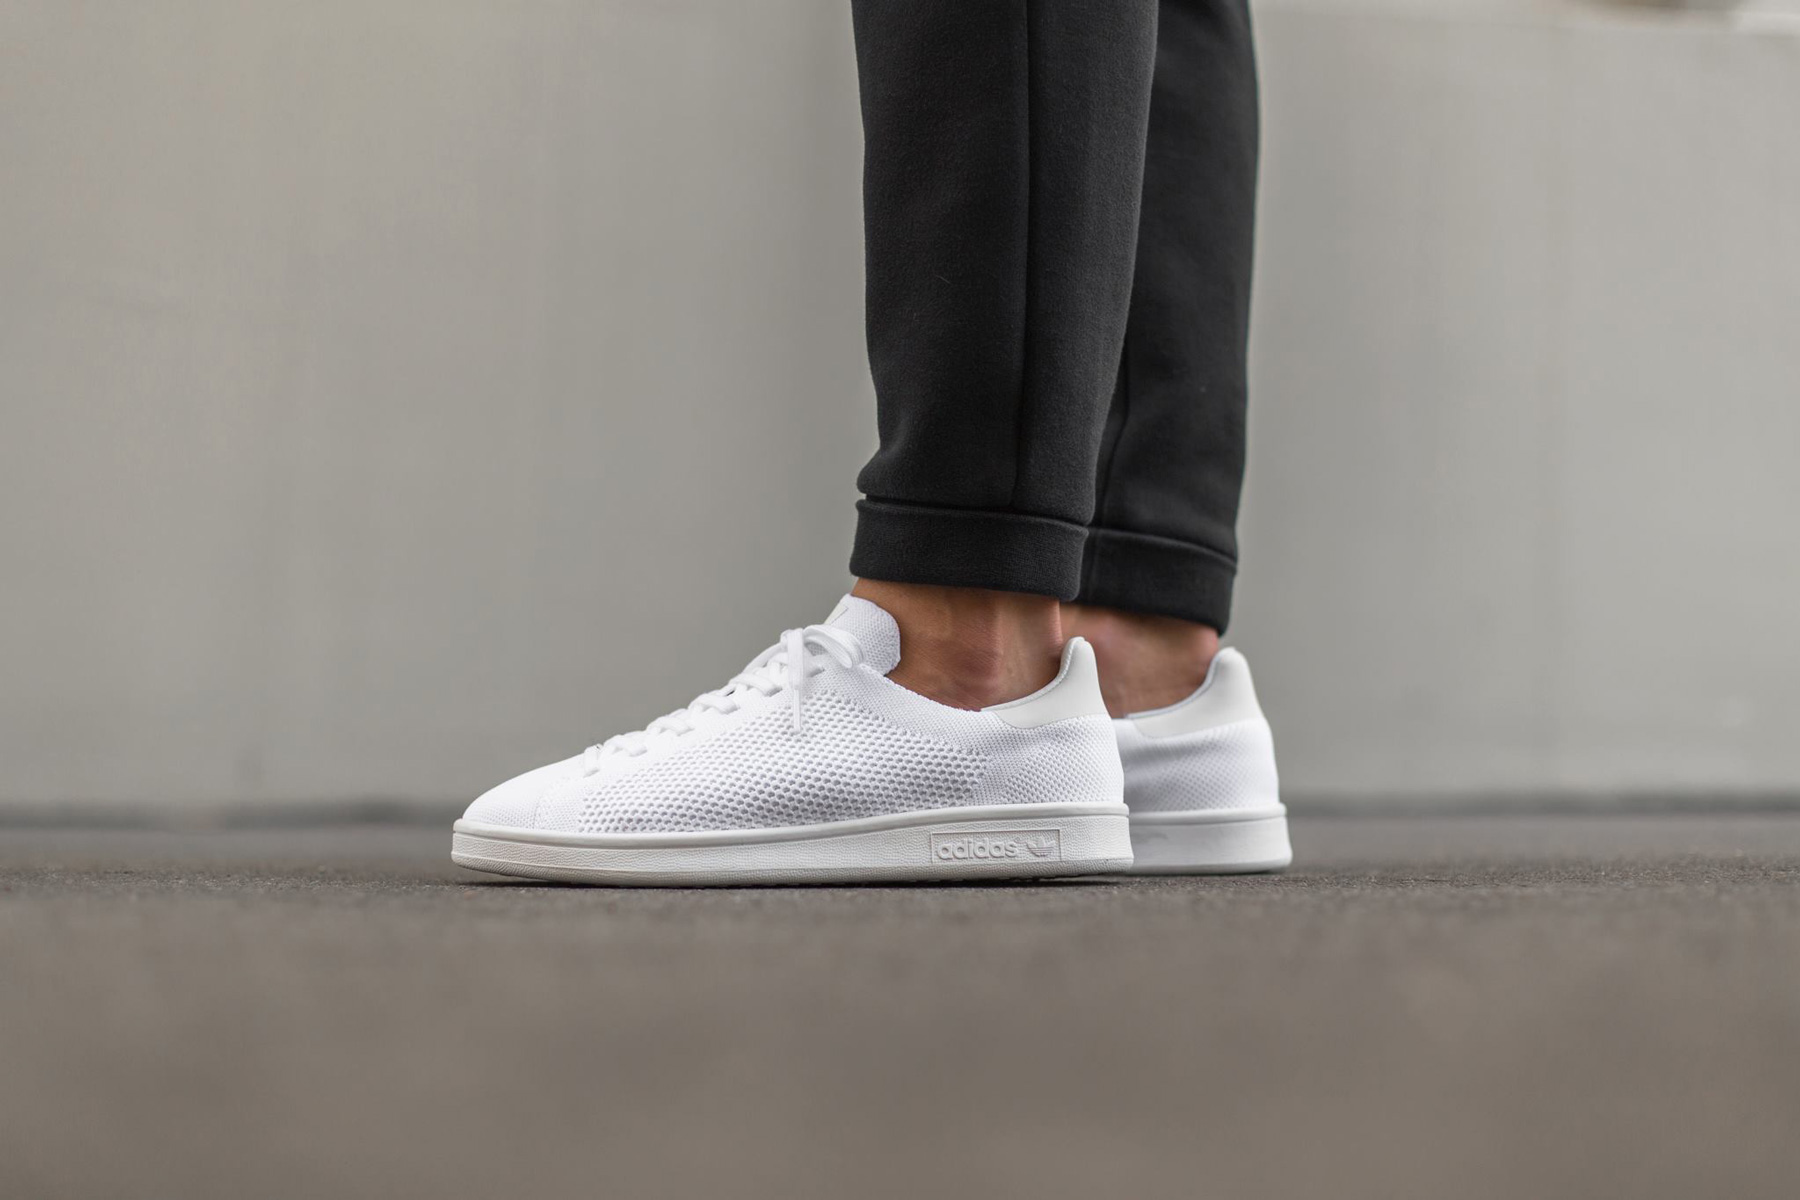 Adidas Stan Smith Primeknit Grau